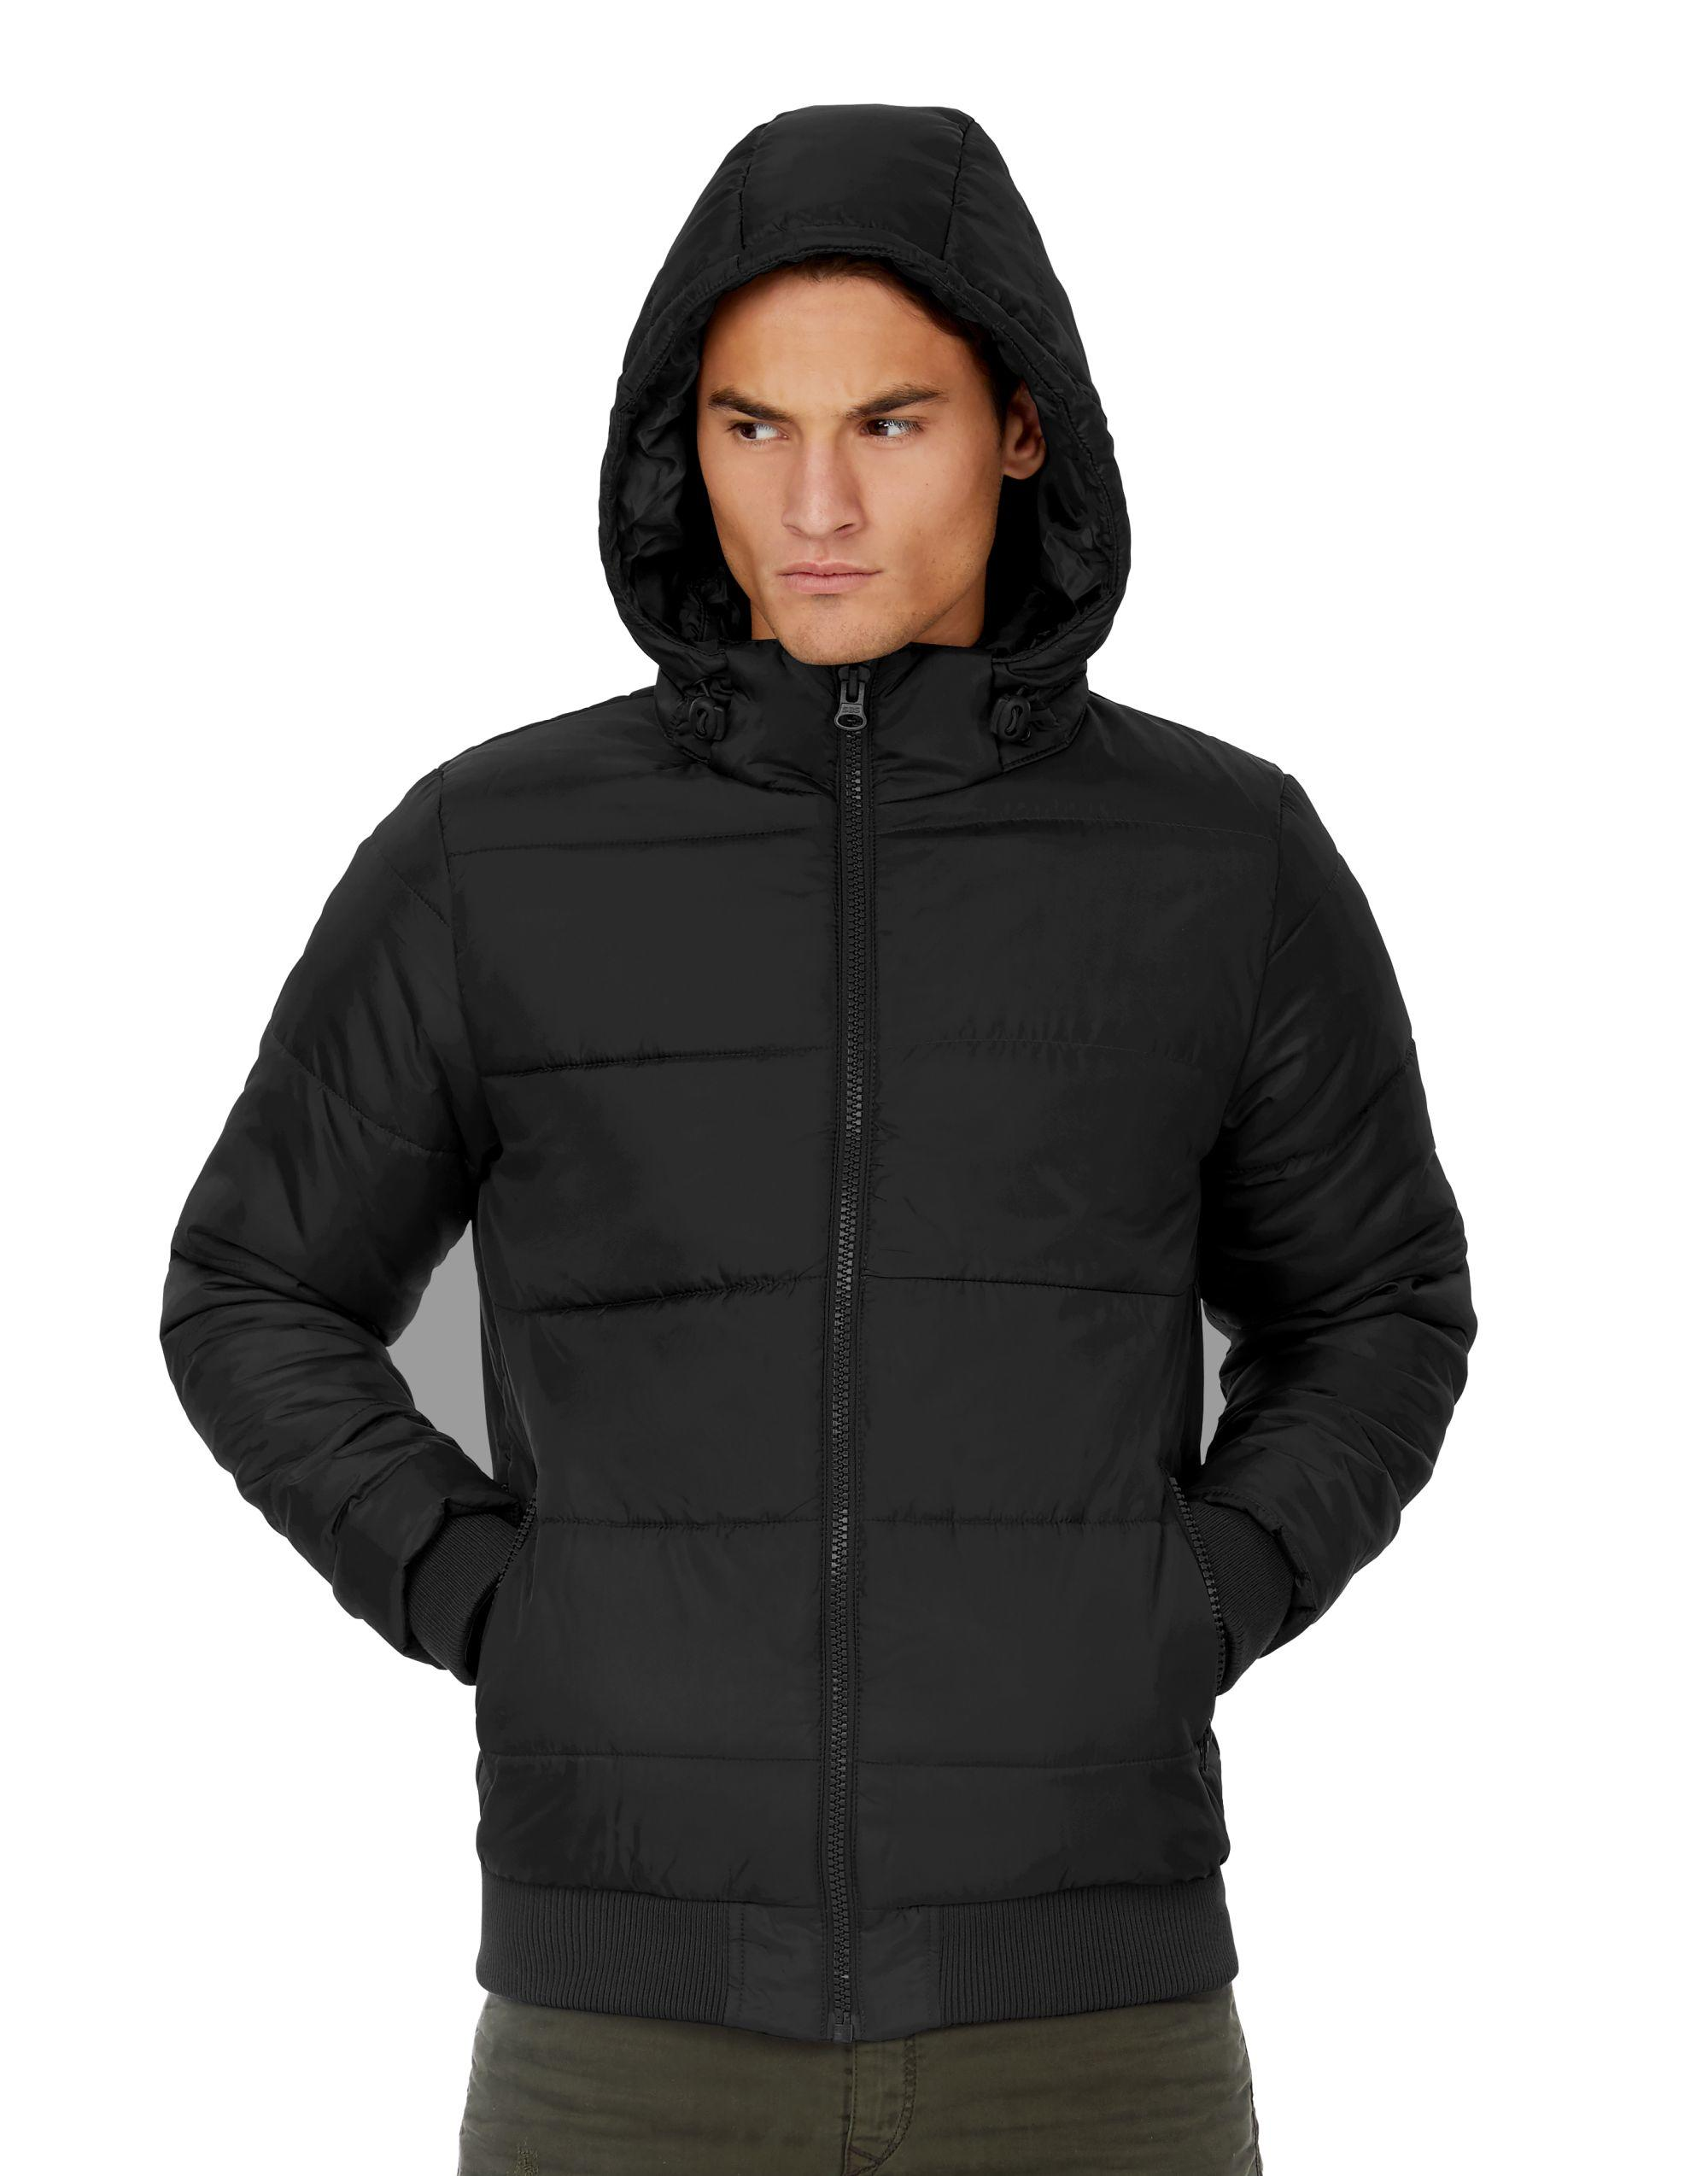 B&C Mens Superhood Jacket in Black (Product Code: JM940)